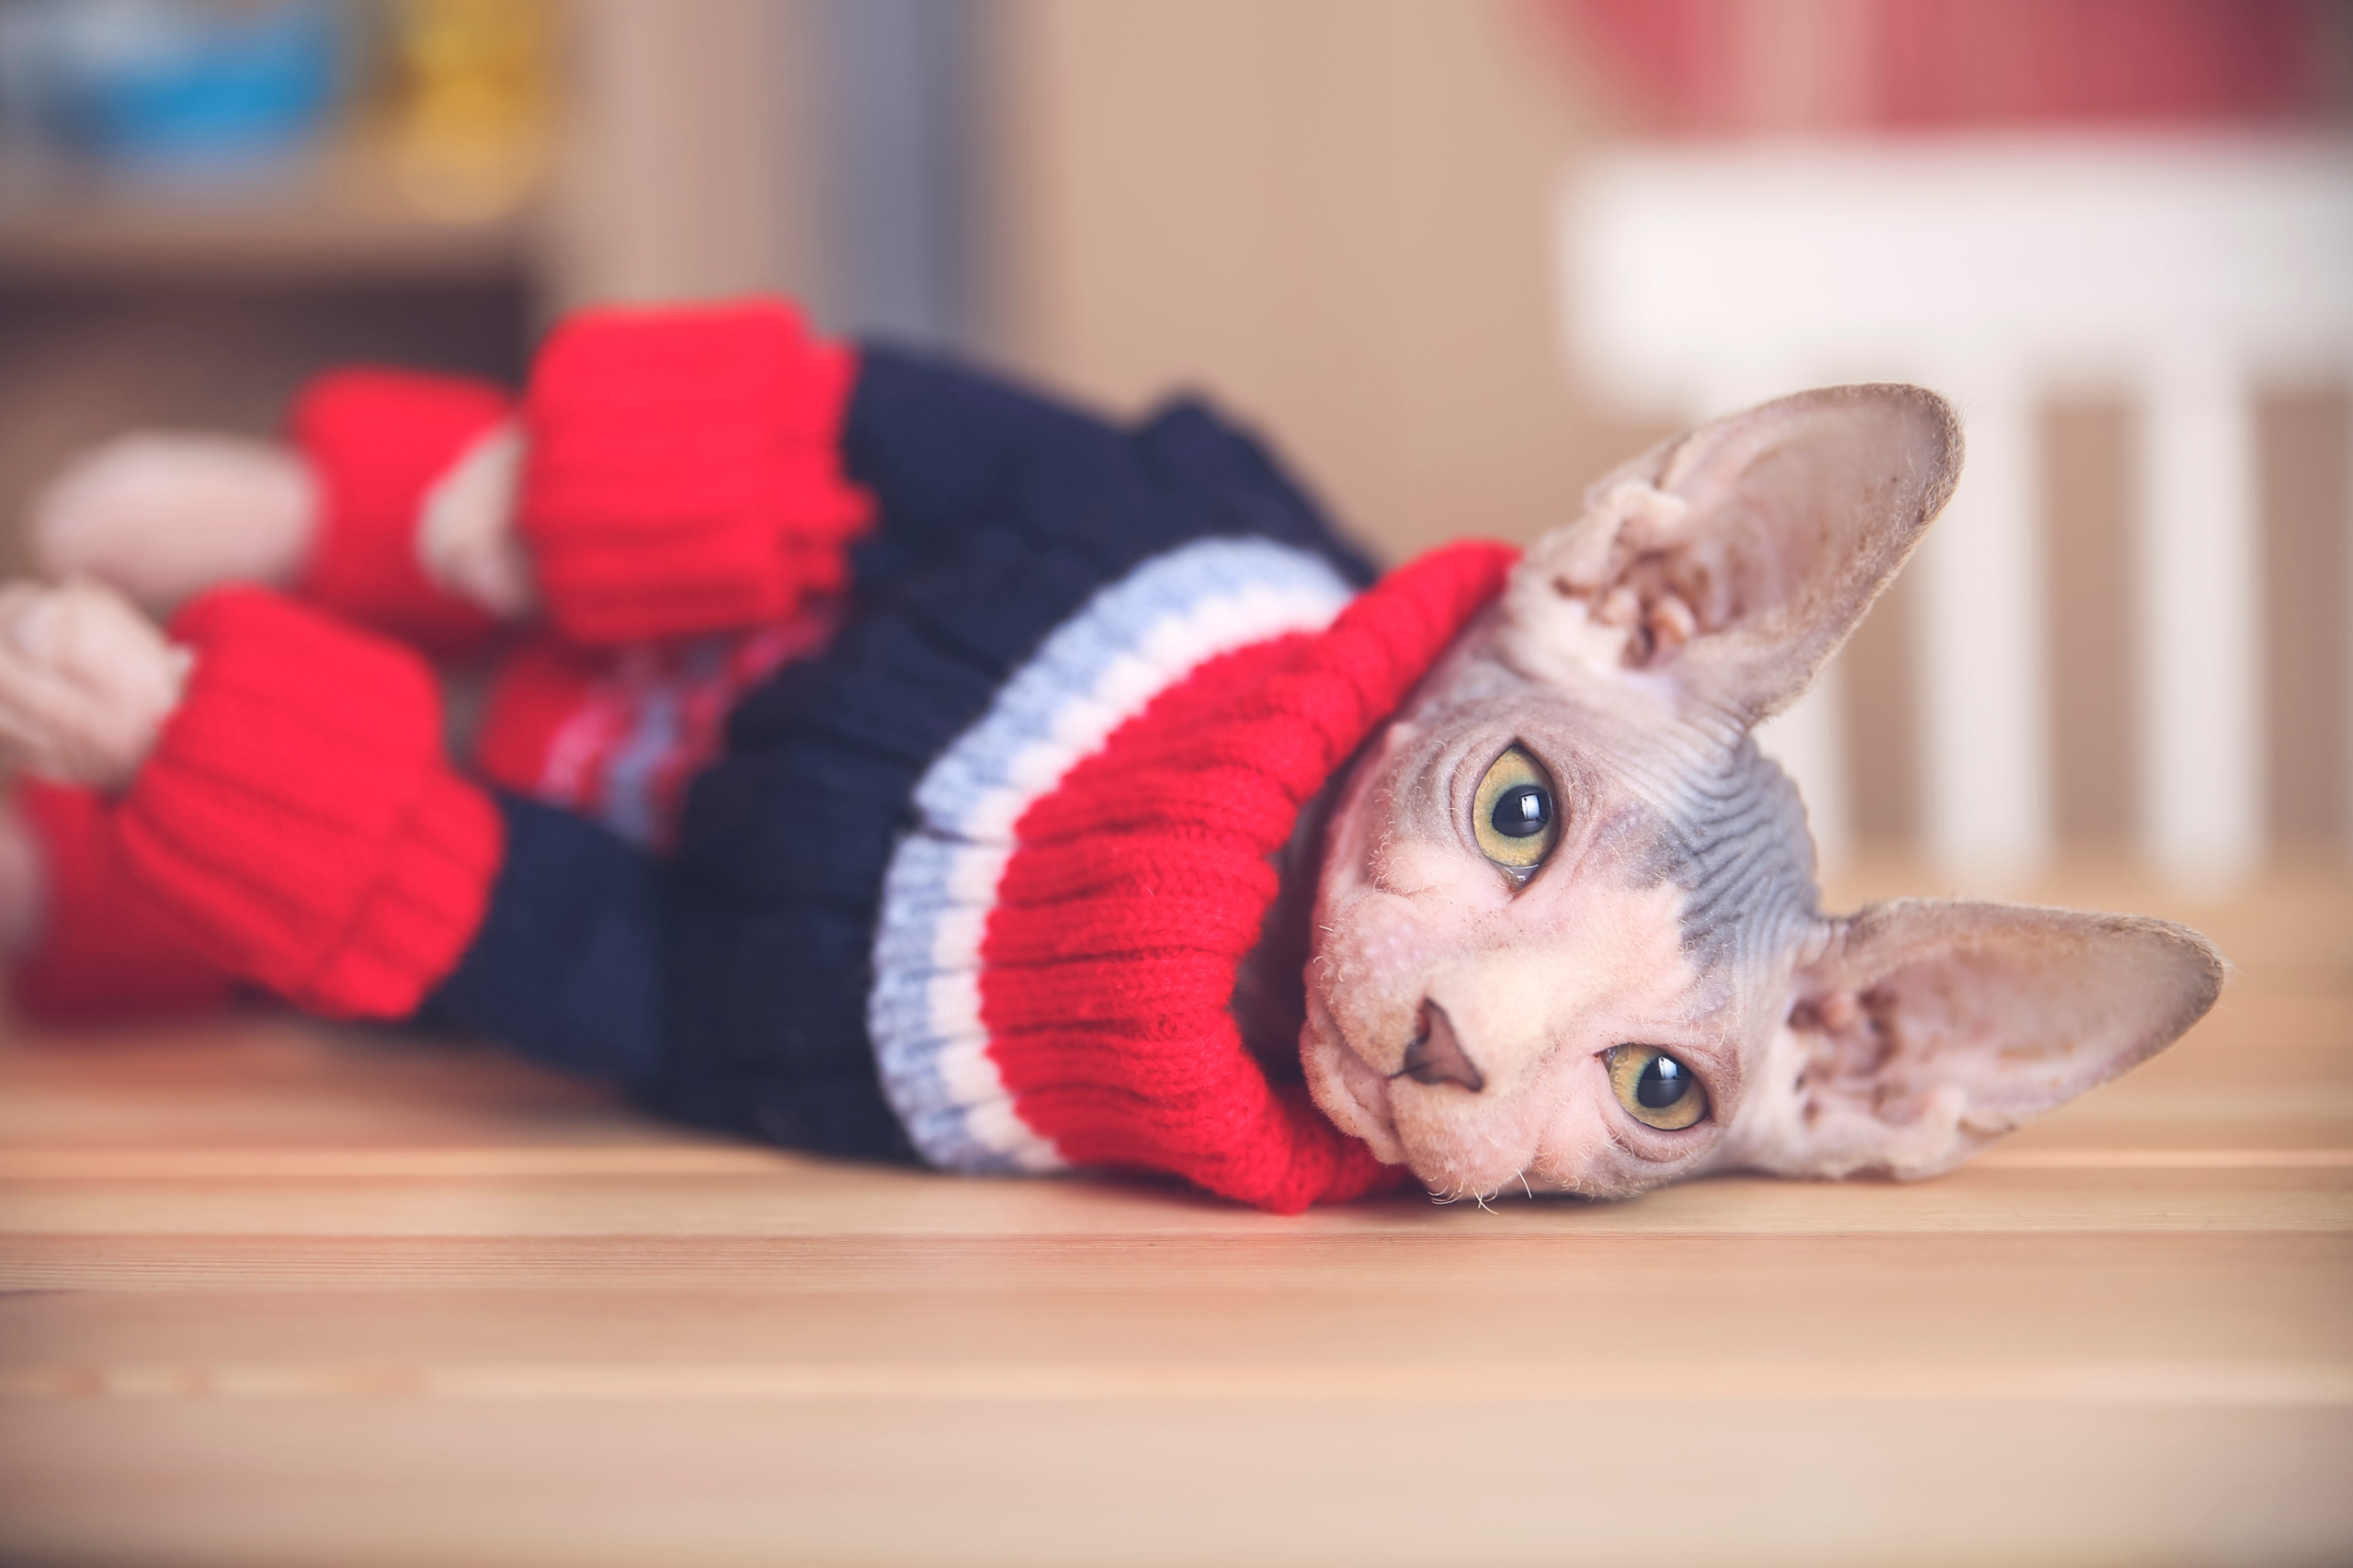 Hairless cat keeping warm in a red and blue sweater